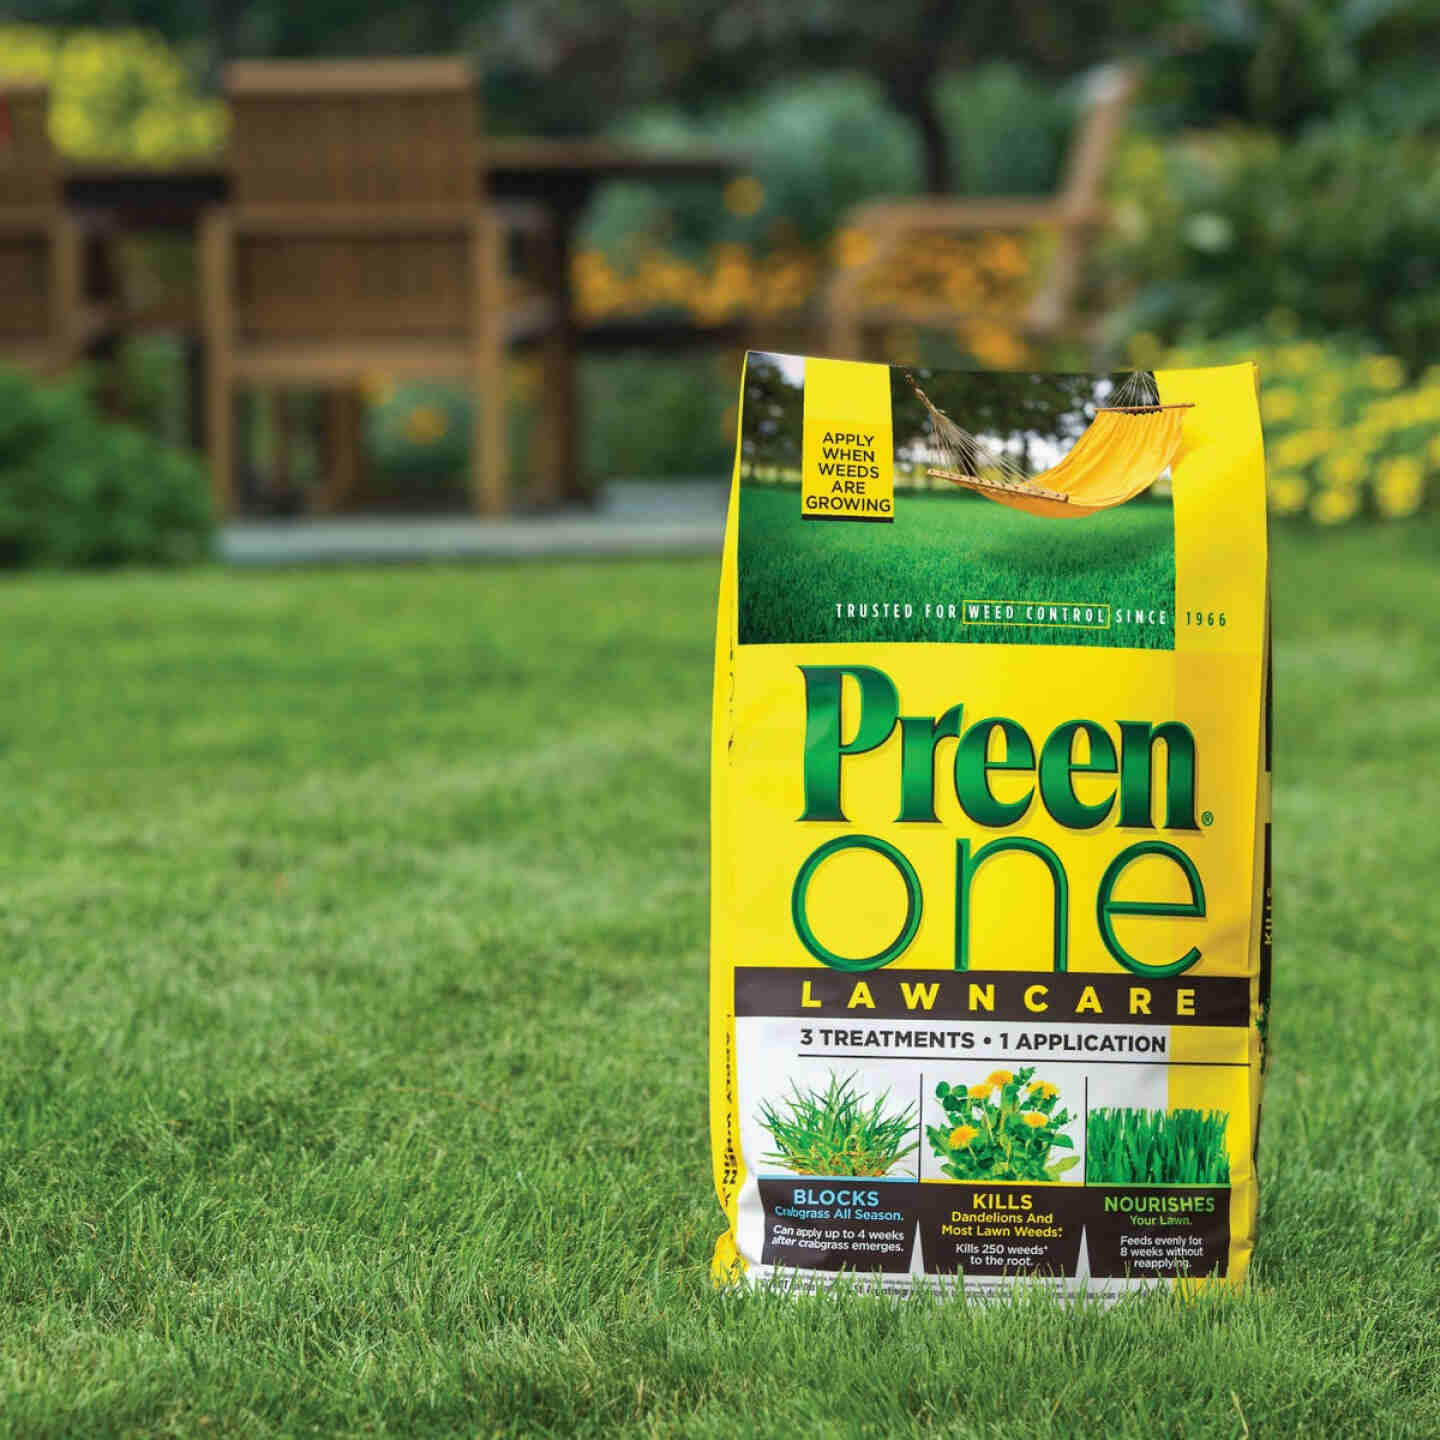 Preen One Lawn Care 18 Lb. Ready To Use Granules Weed Killer with Fertilizer Image 3